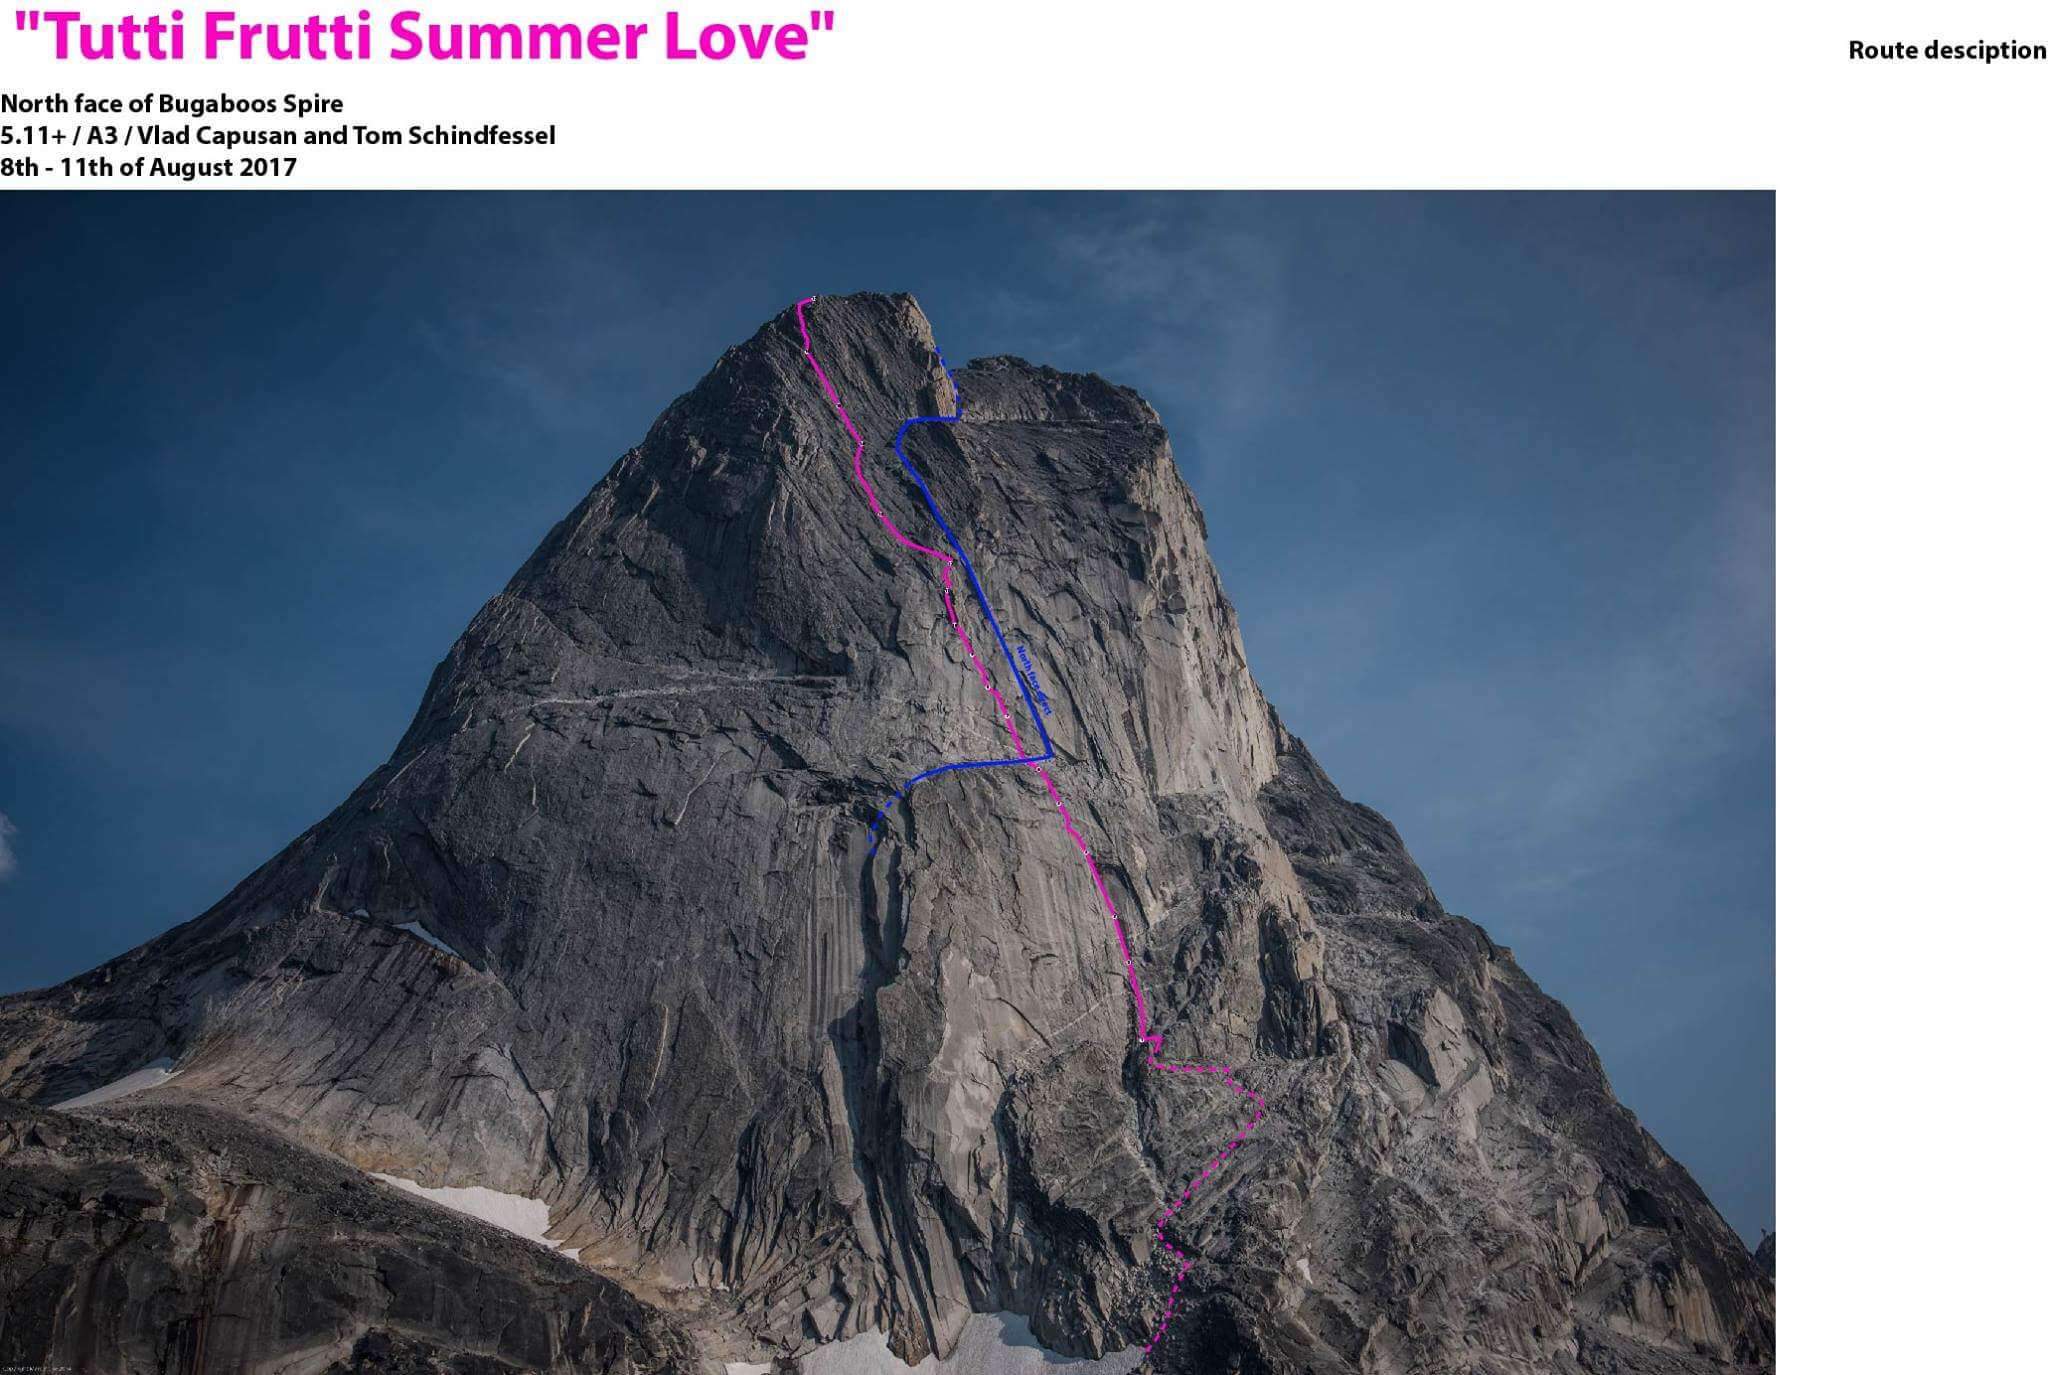 Pink line: Tutti Frutti Summer Love (2017). Blue line: upper North Face Route (Kor-Suhl, 1960).